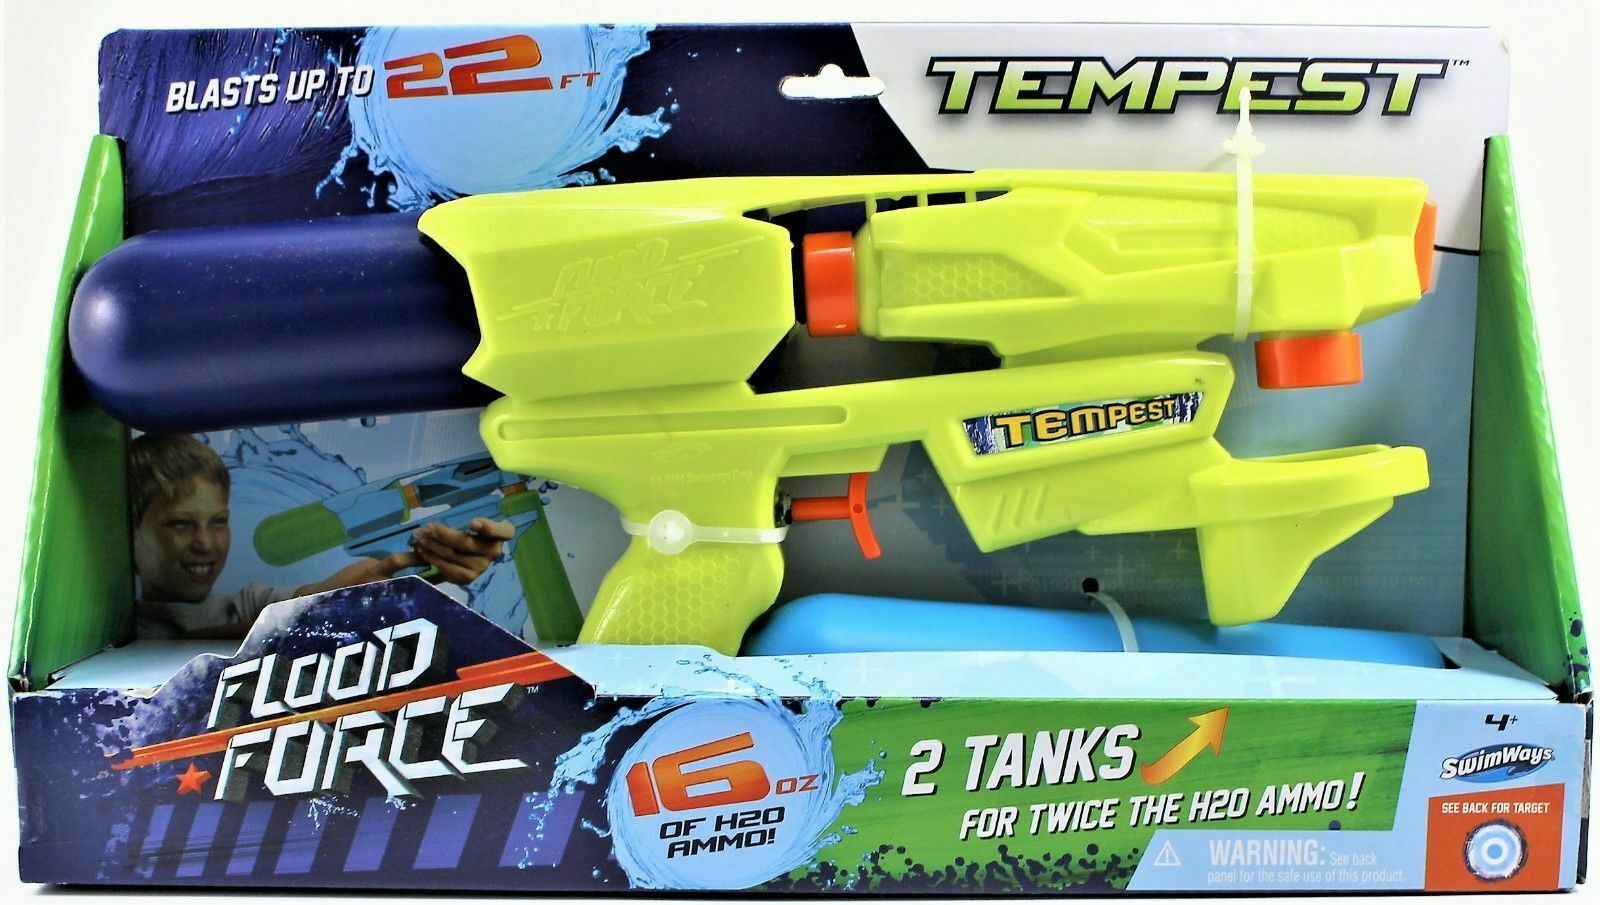 Primary image for Squirt Gun Swimways Flood Force Tempest Water Gun (Blue & Yellow) 51393552